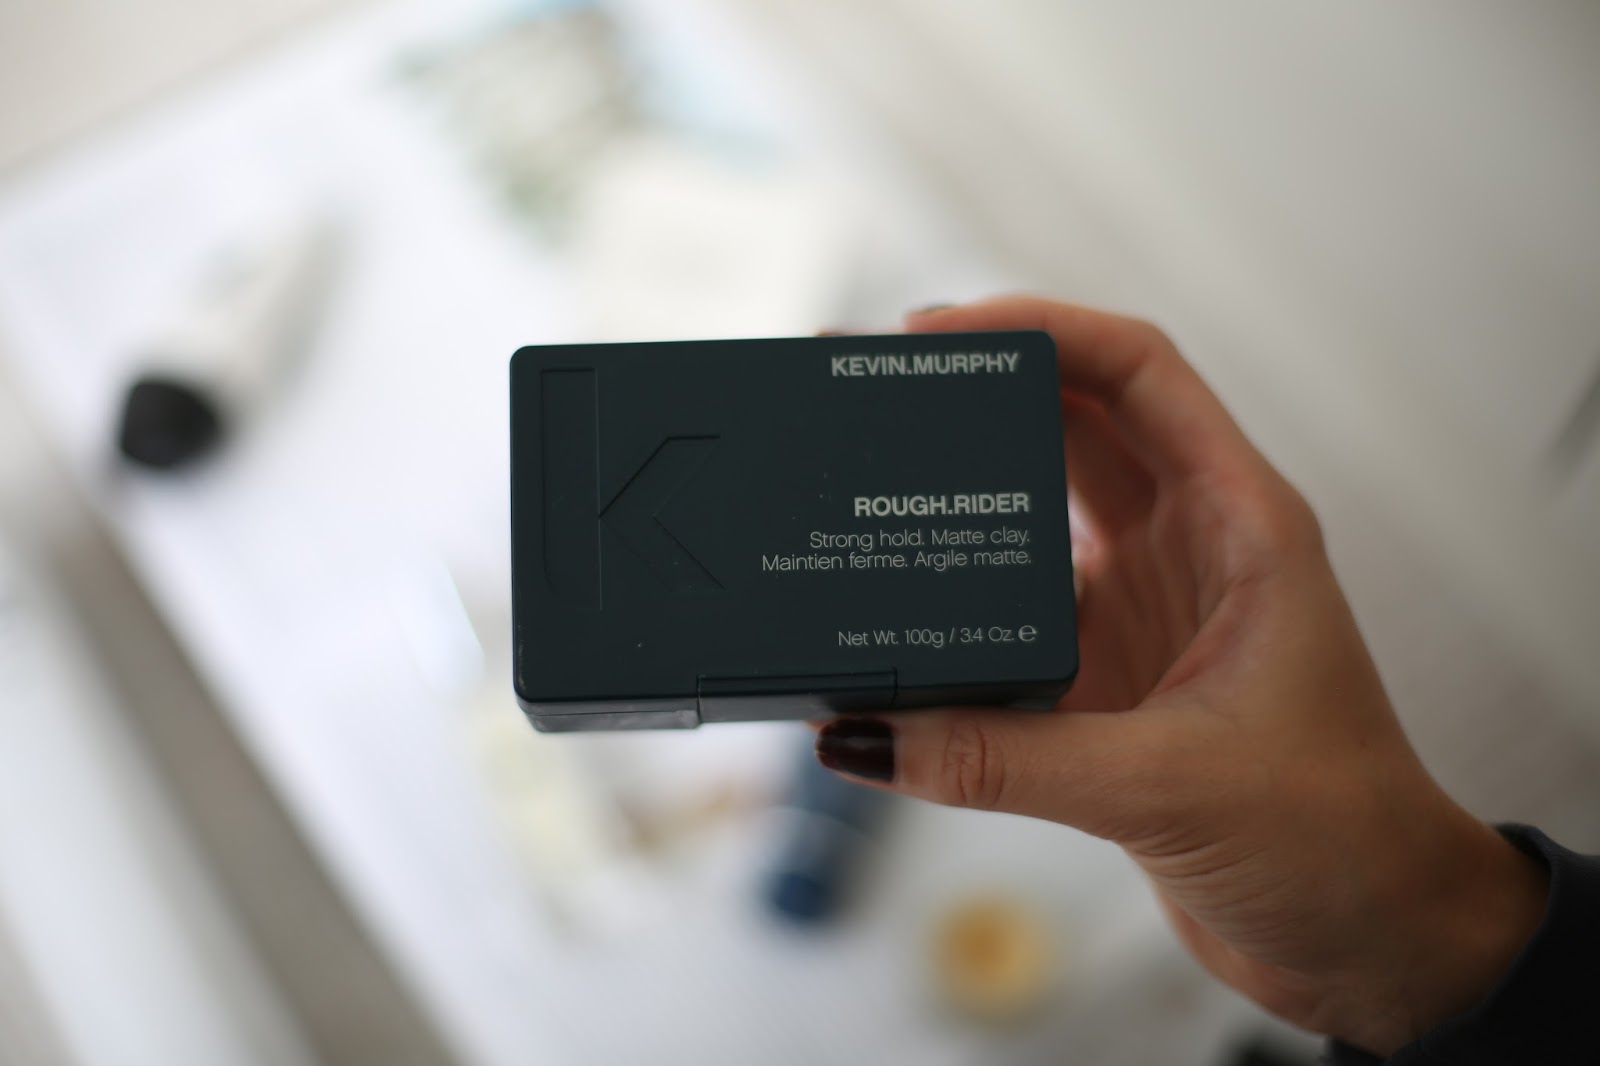 kevin murphy rough rider